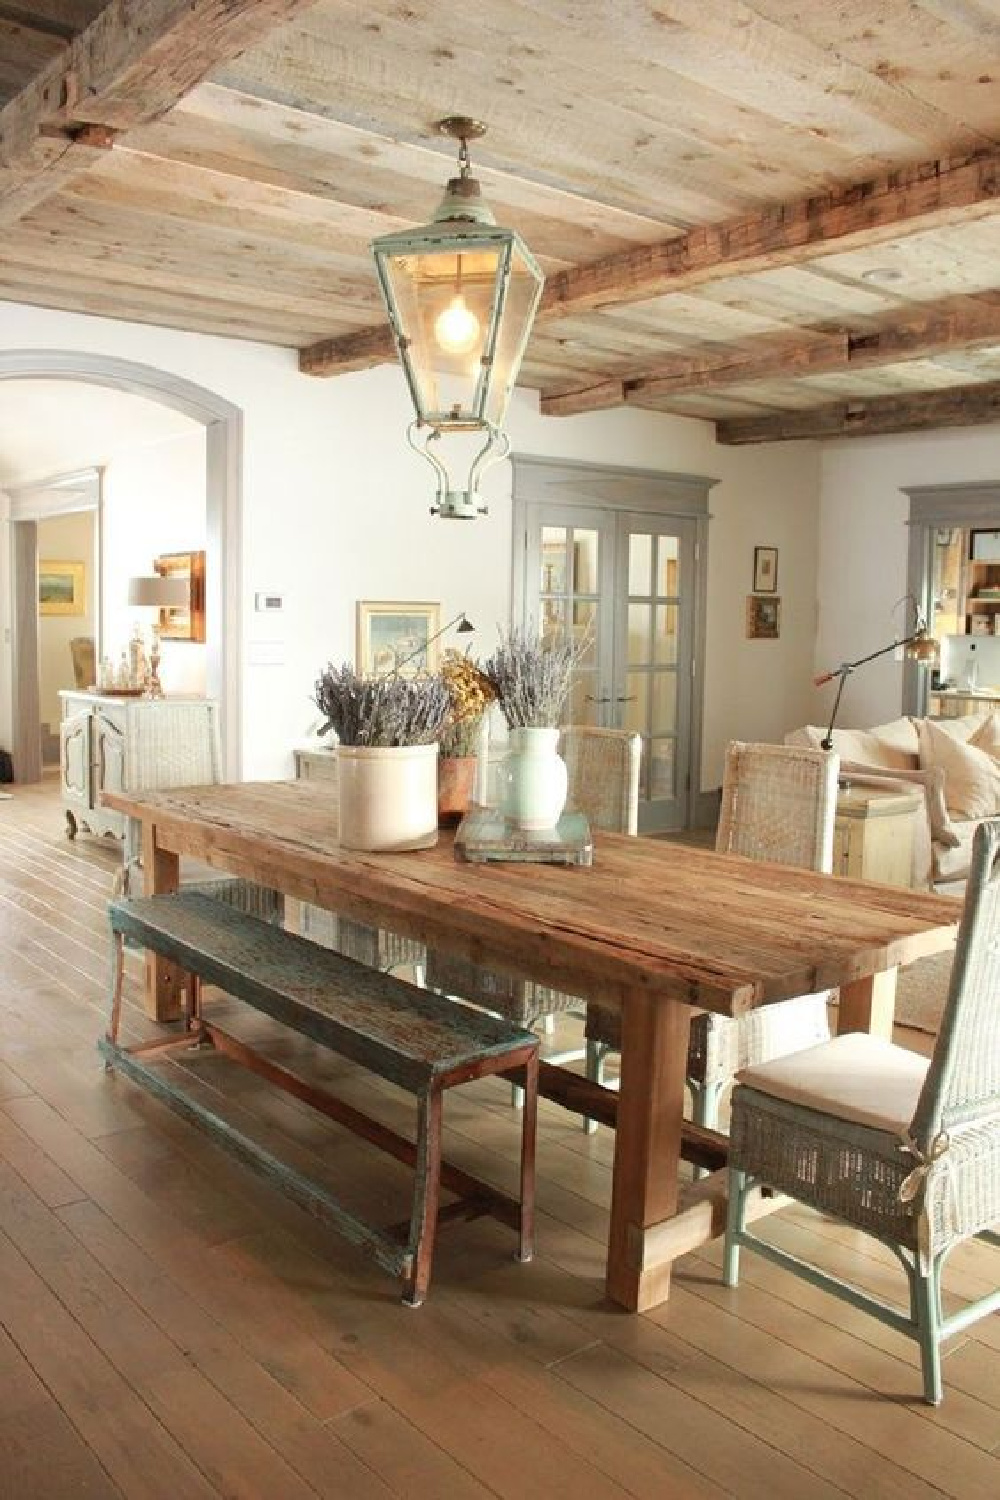 Rustic elegance and uncluttered country decor sing in a French Nordic Farmhouse dining room with knotty wood ceiling and antique lantern. See more European inspired country decor in the story. #FrenchCountry #FrenchNordic #countrydecor